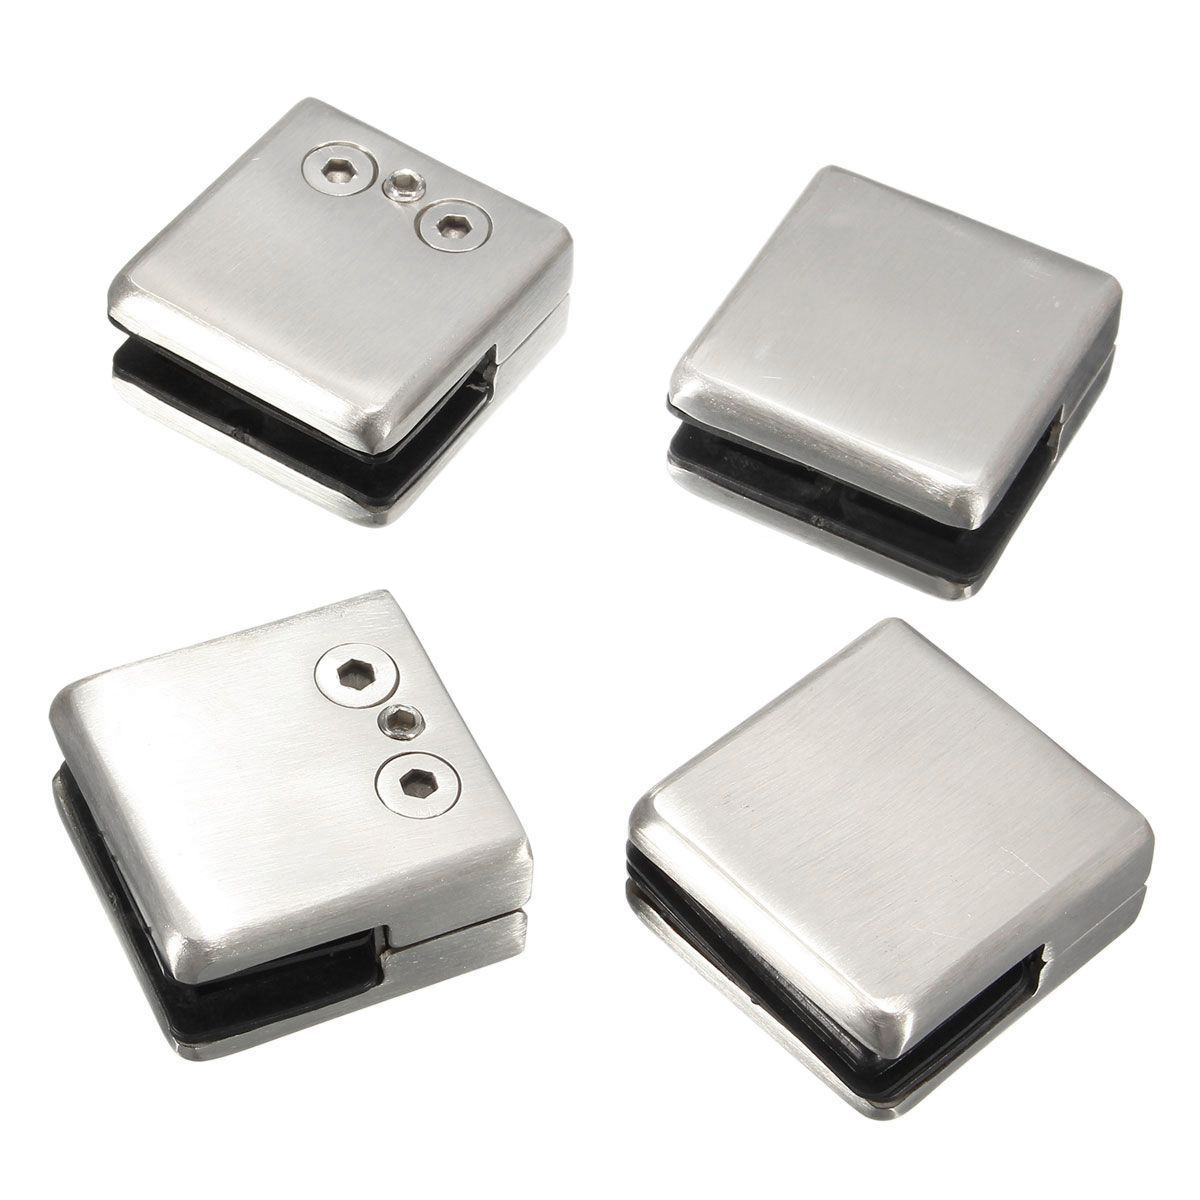 4pcs stainless steel square clamp holder bracket clip for glass shelf handrails silver